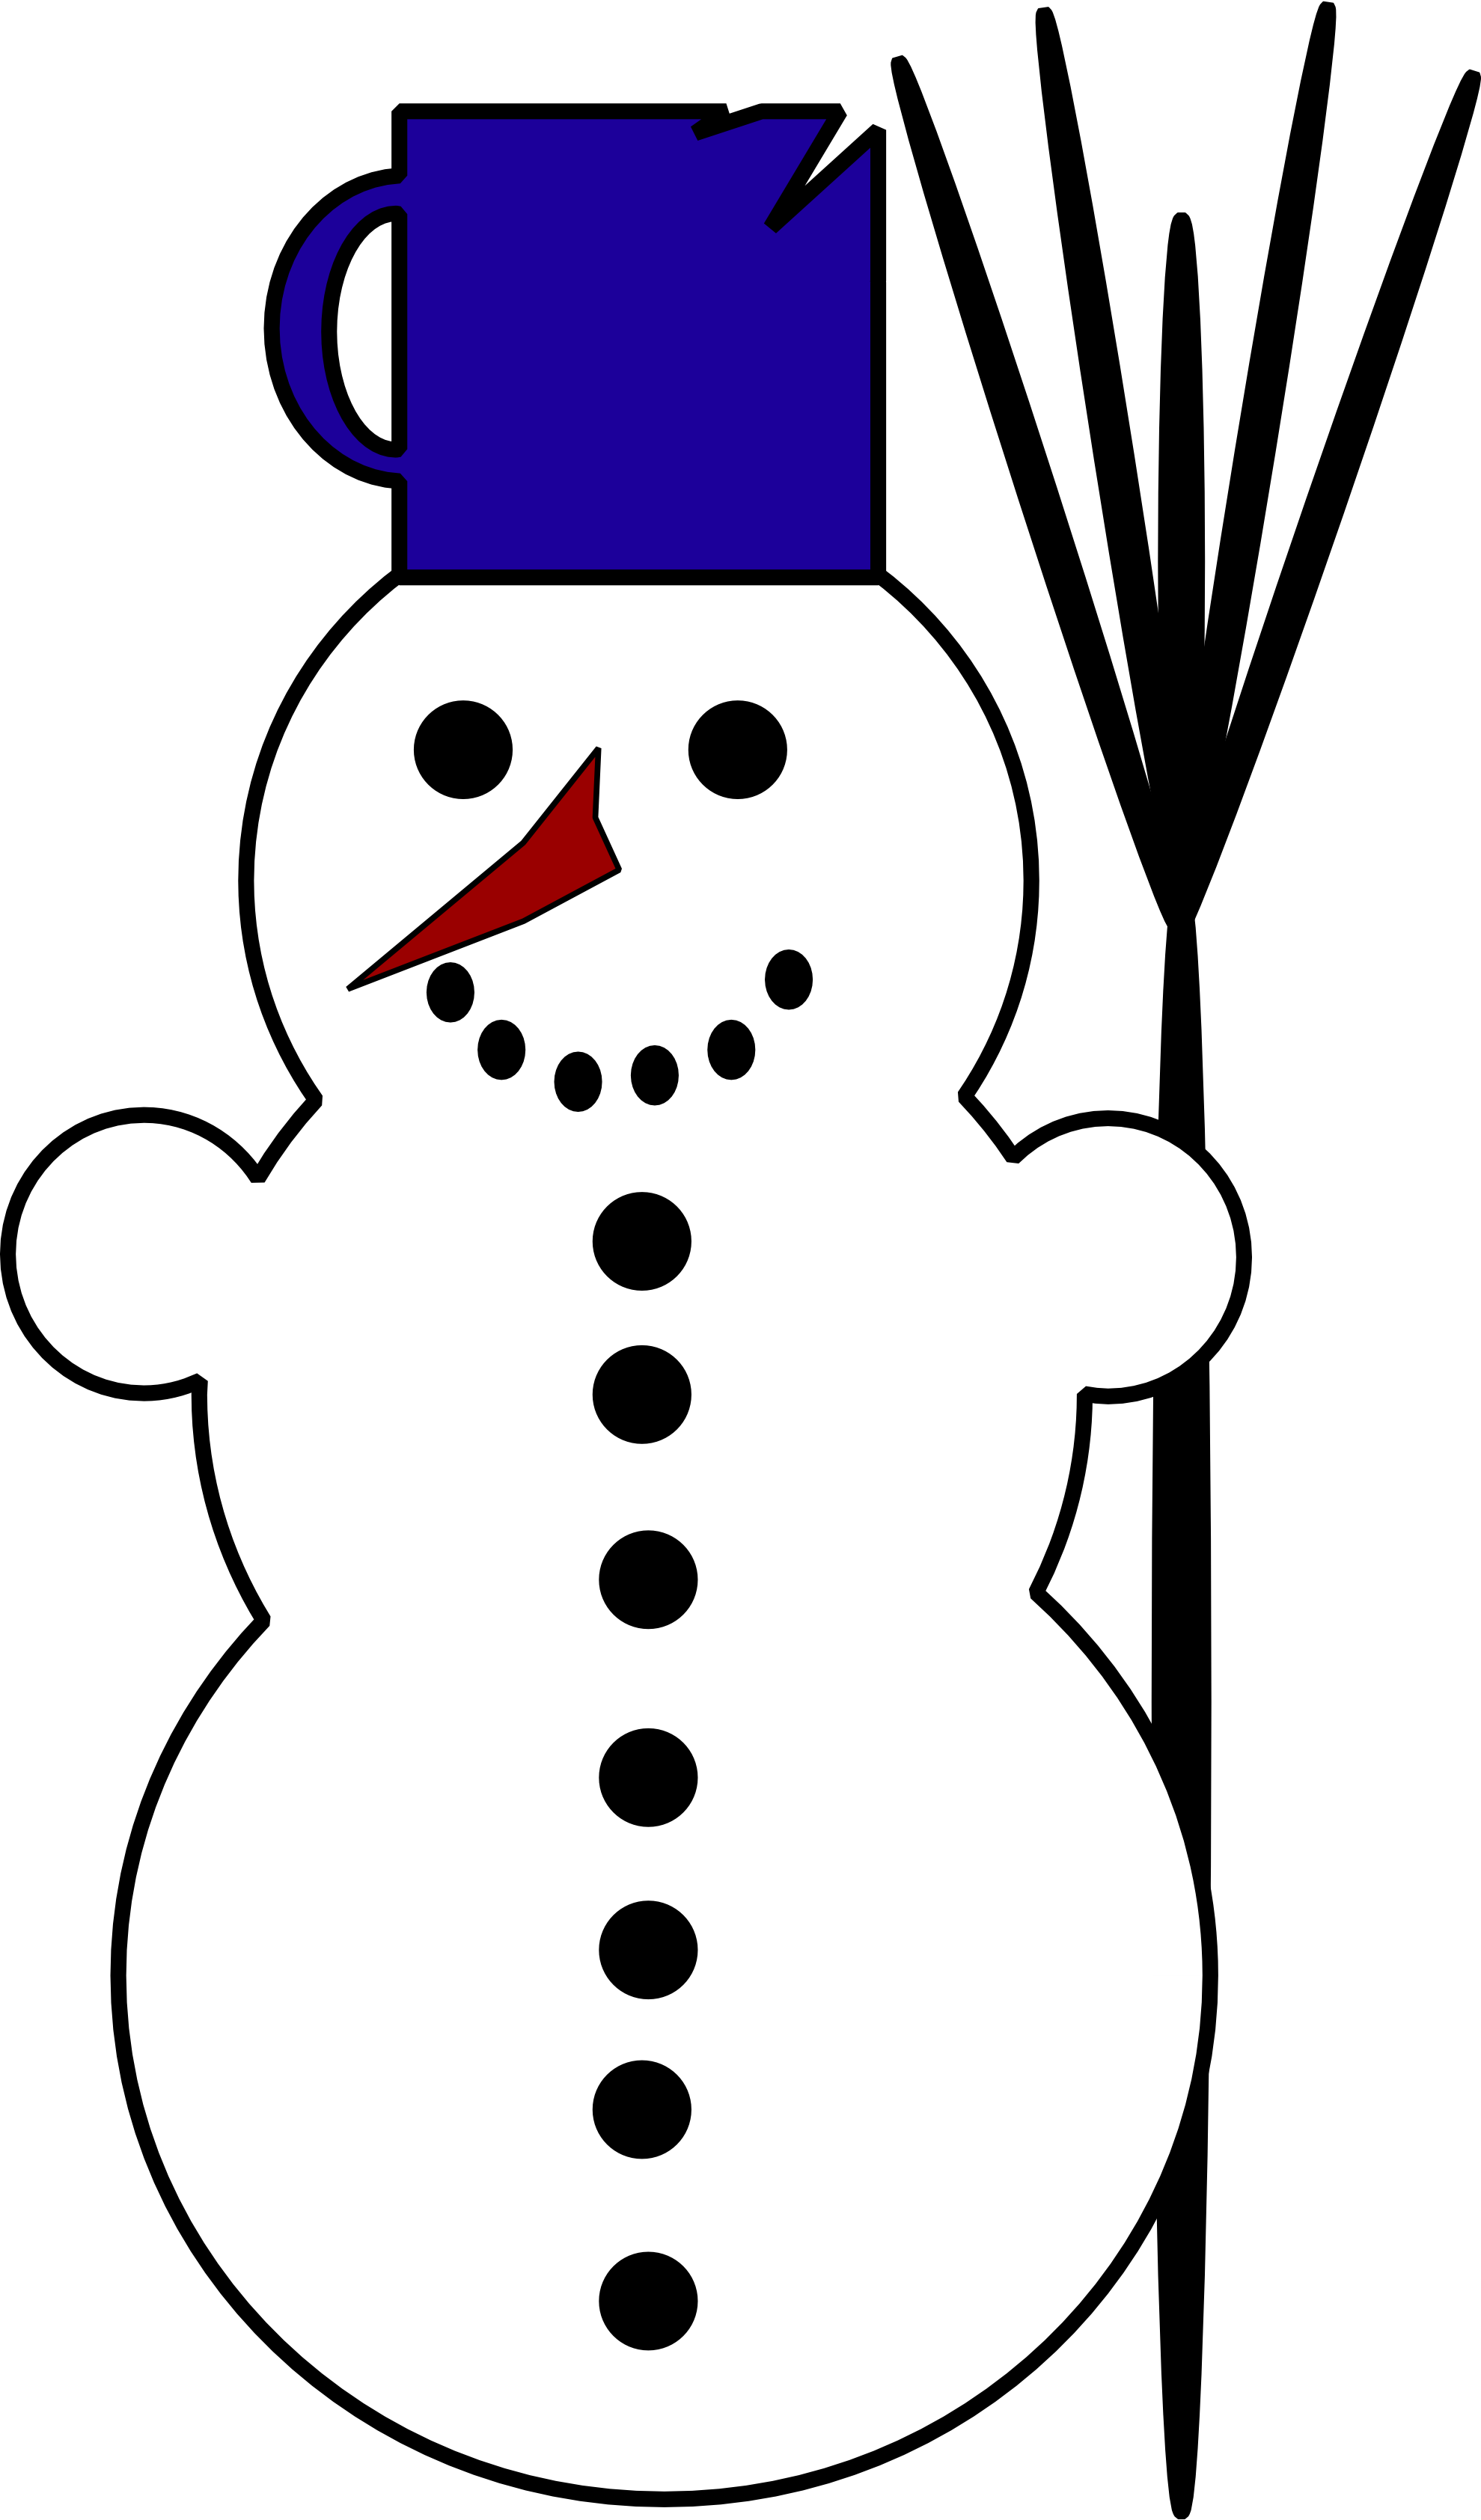 1950 s snowman clipart no background banner royalty free library Free Vintage Snowman Images, Download Free Clip Art, Free Clip Art ... banner royalty free library